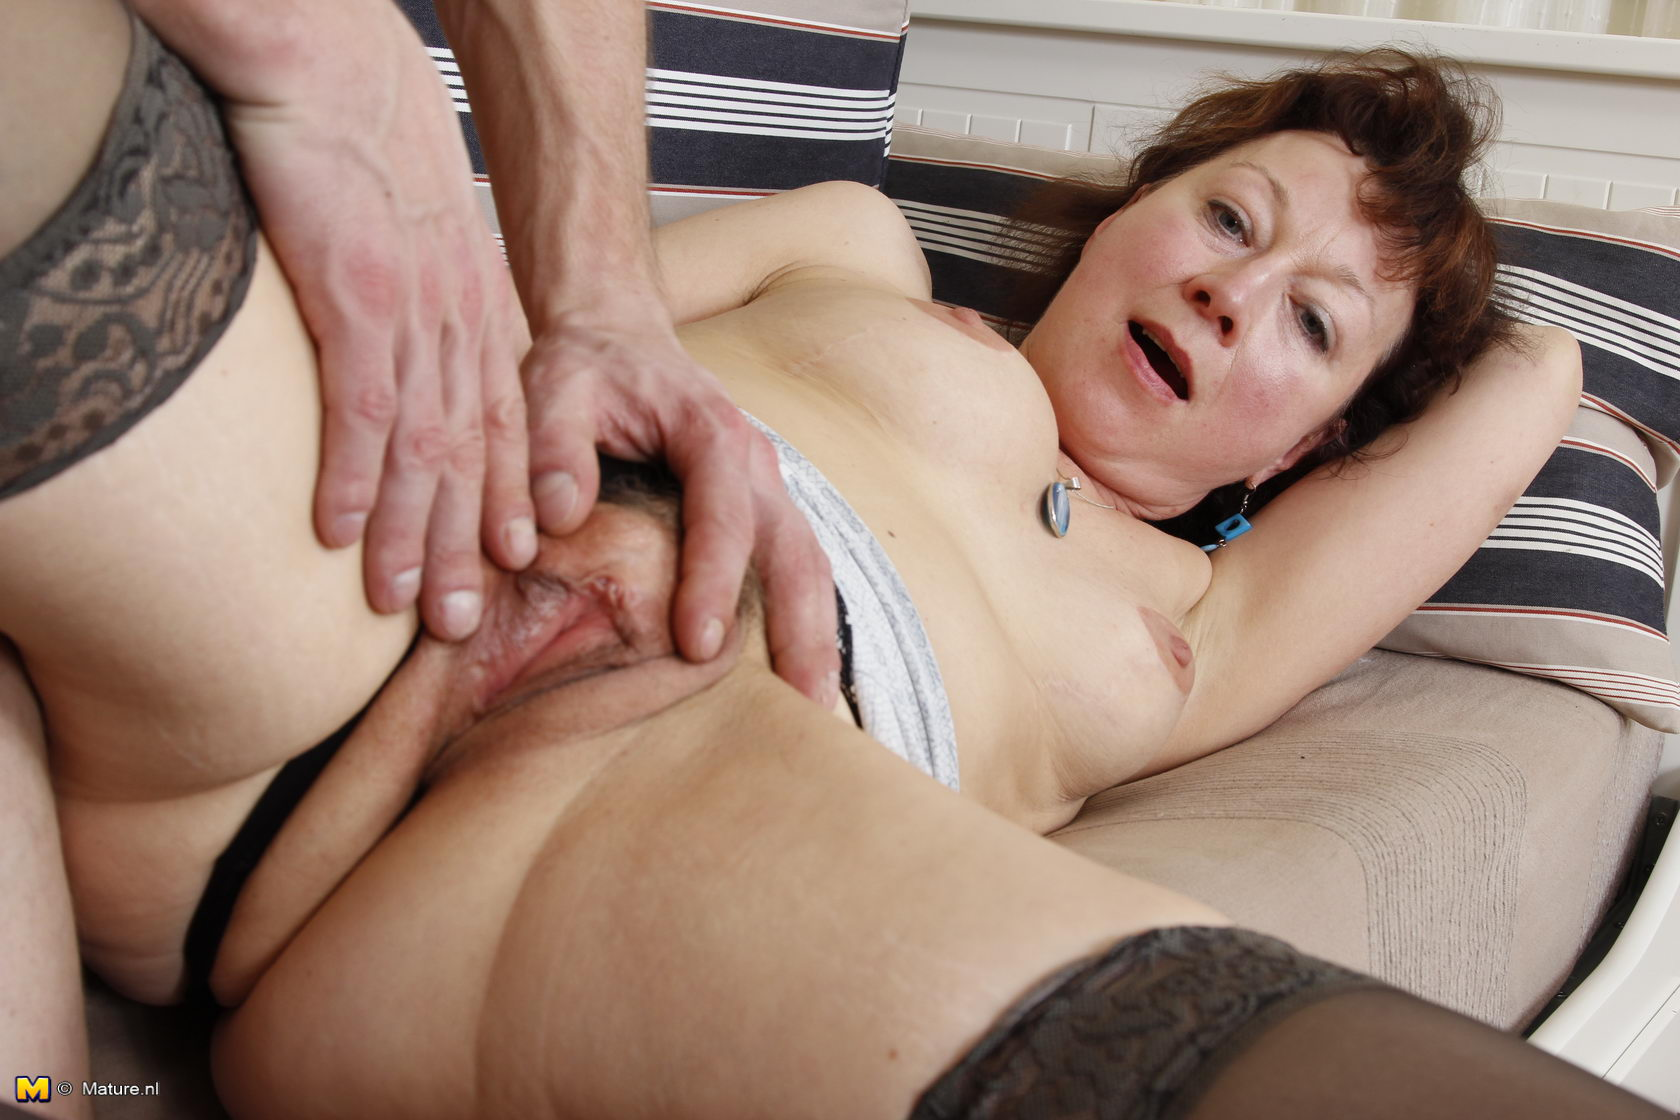 Mature women who love to fuck